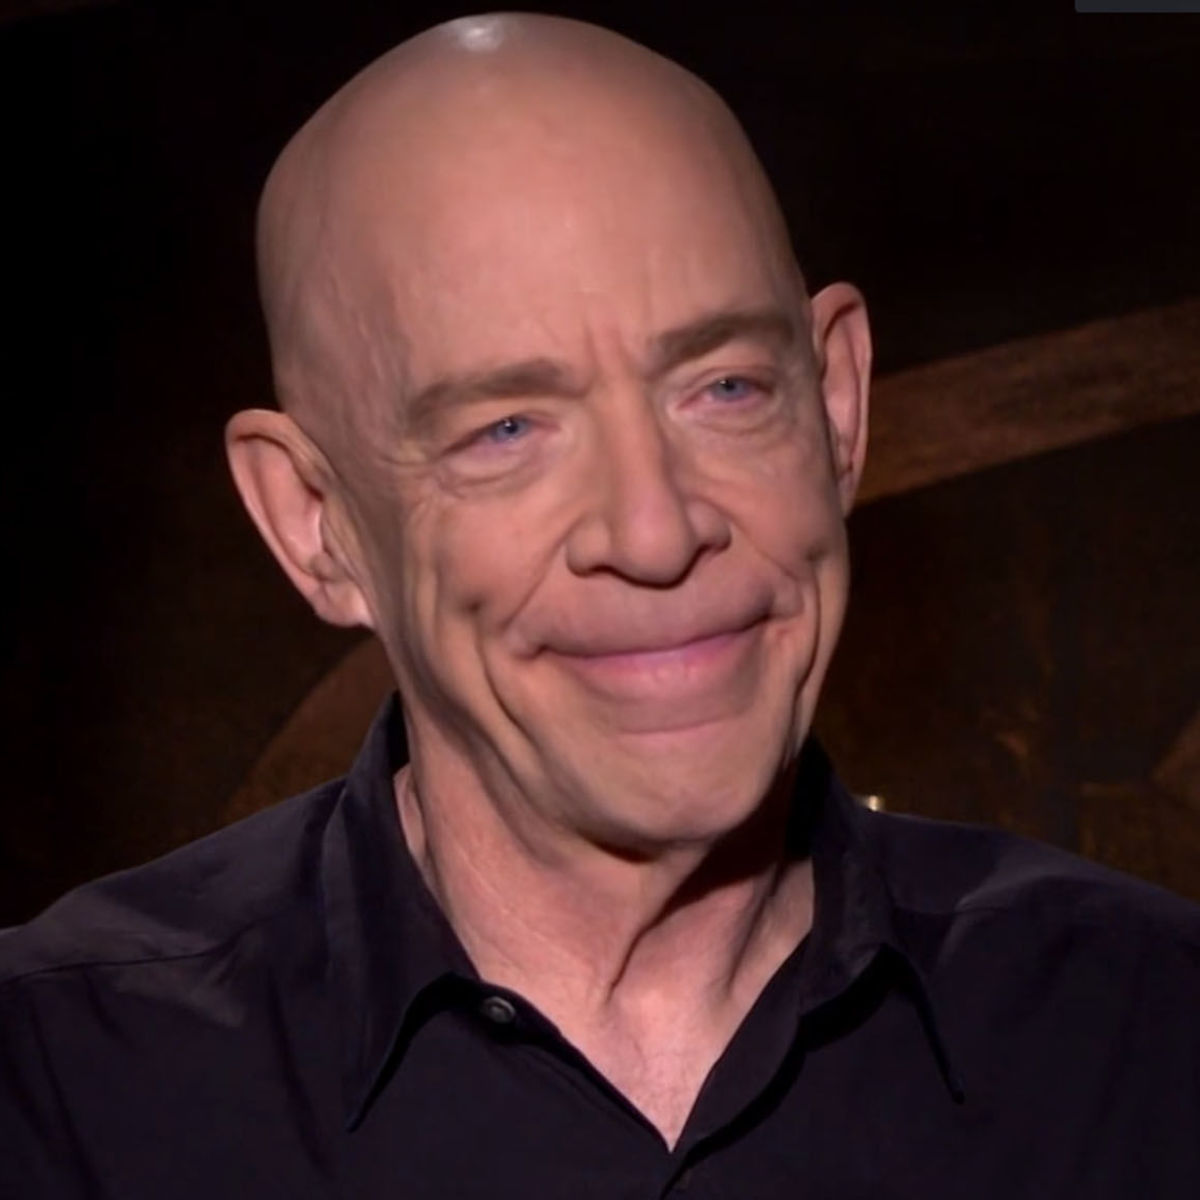 JK Simmons on Counterpart season 2 Hero